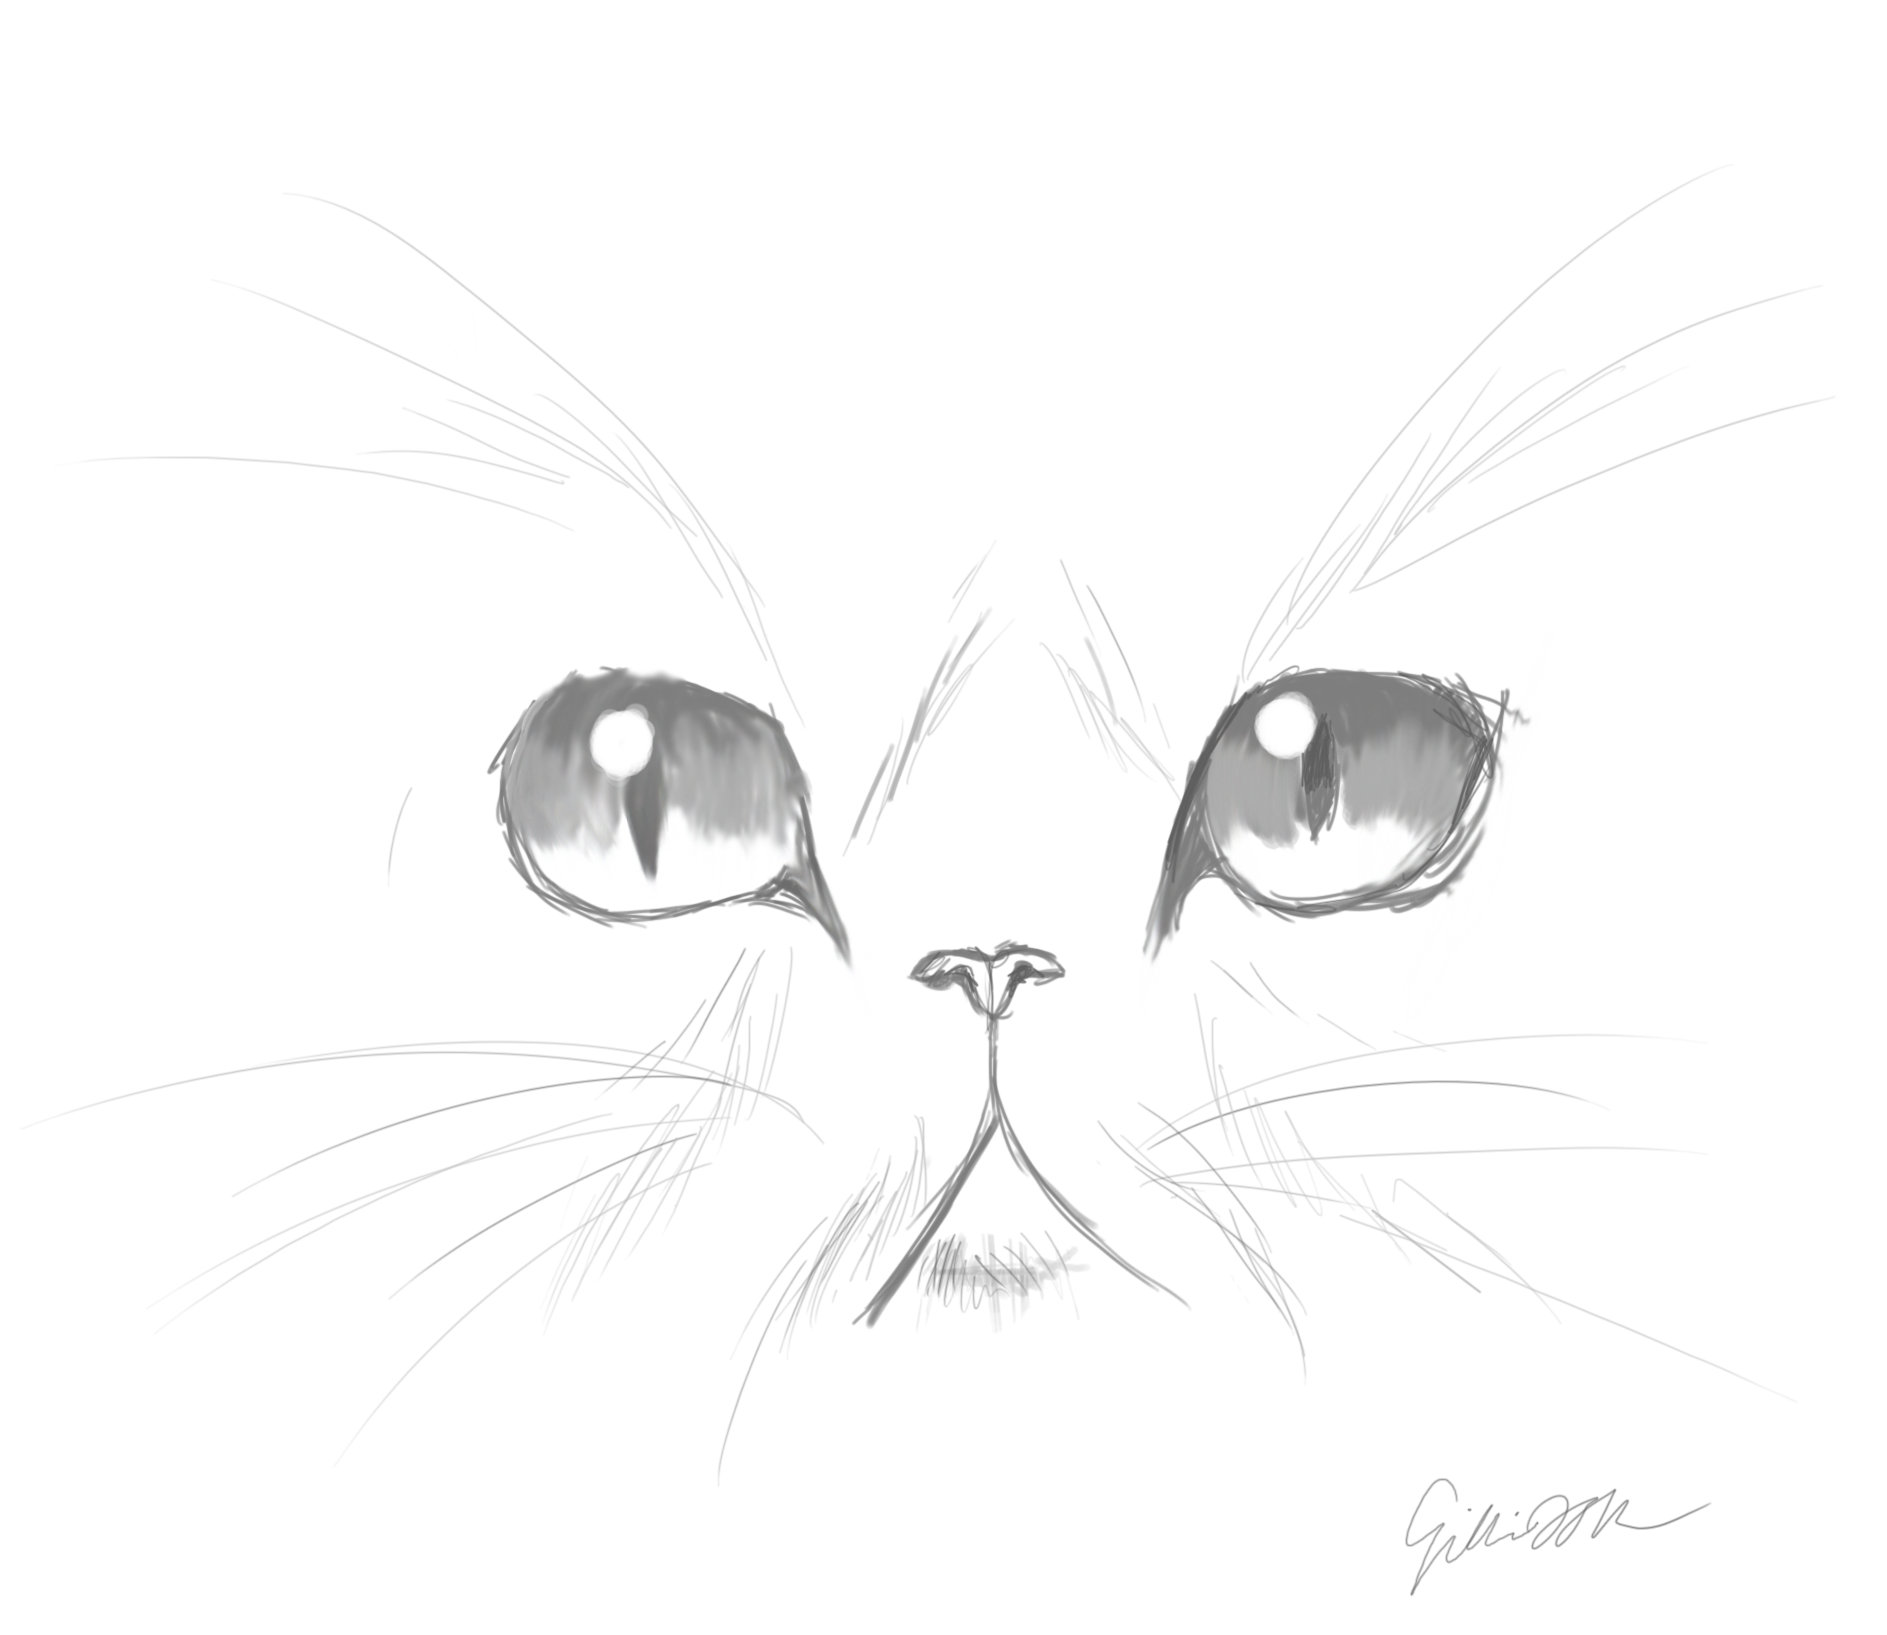 Line Drawing Of A Cat Face : Images for gt cute cat face sketches art